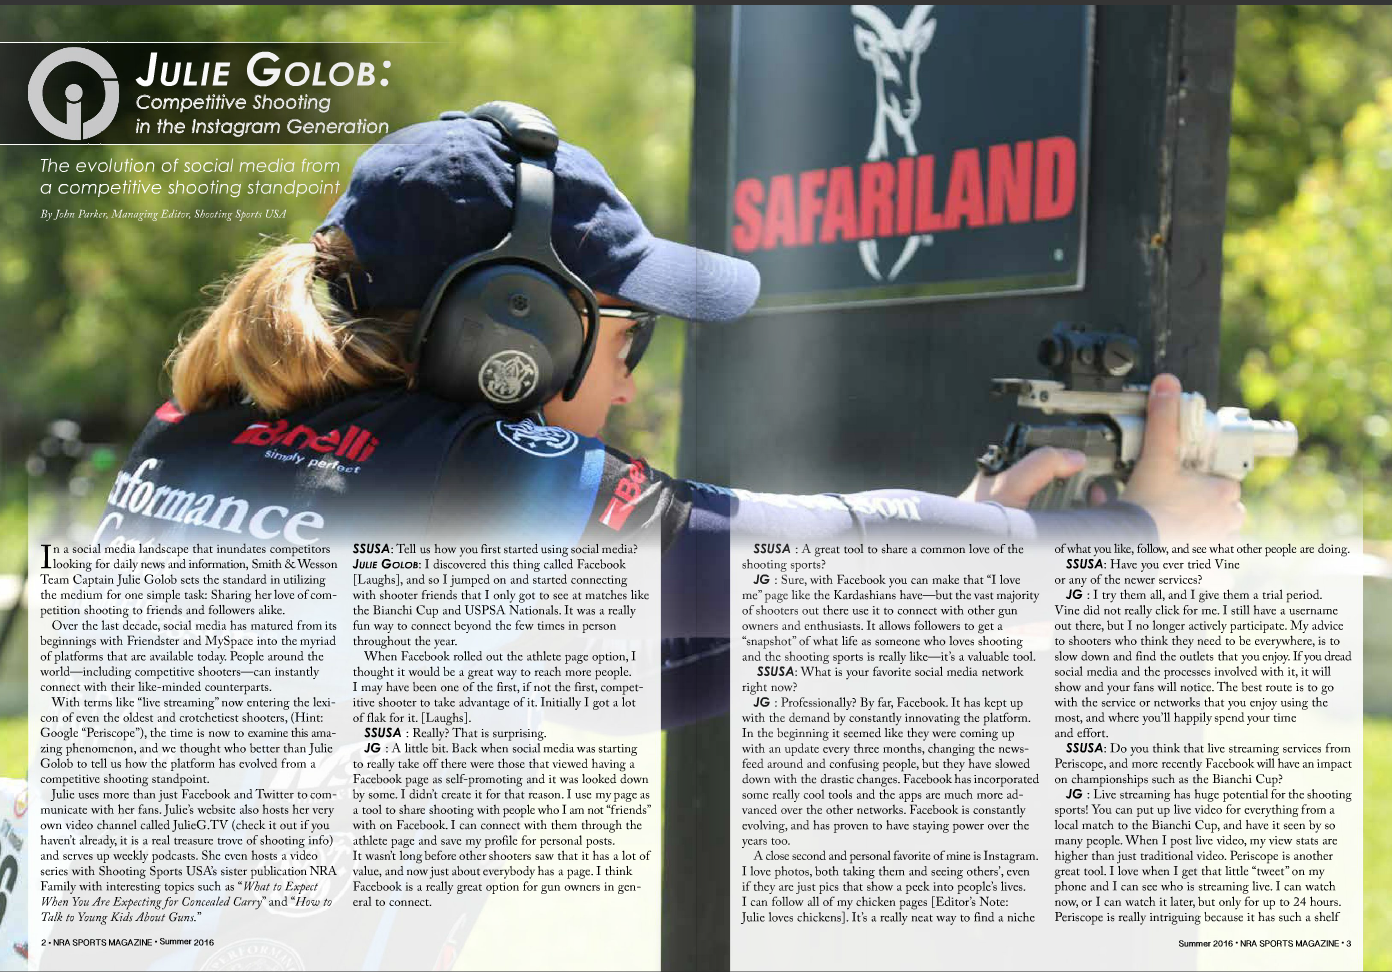 Competitive Shooting in the Instagram Generation | NRA Sports